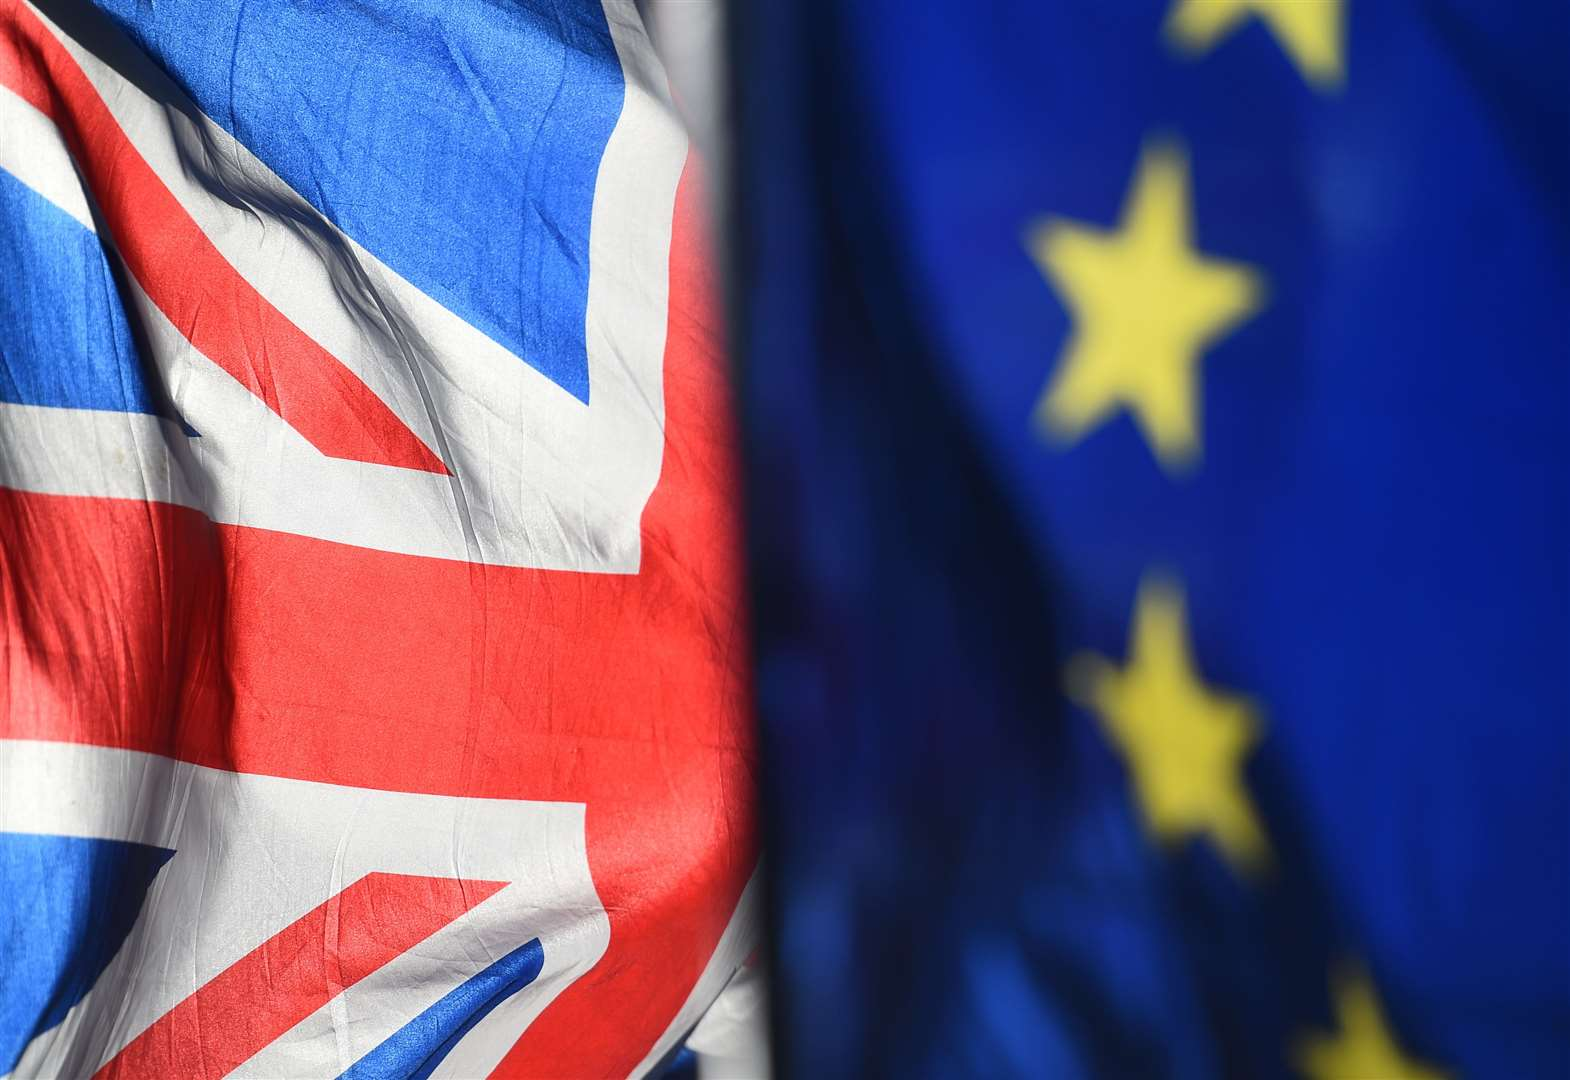 Workshops will get firms 'Brexit ready'